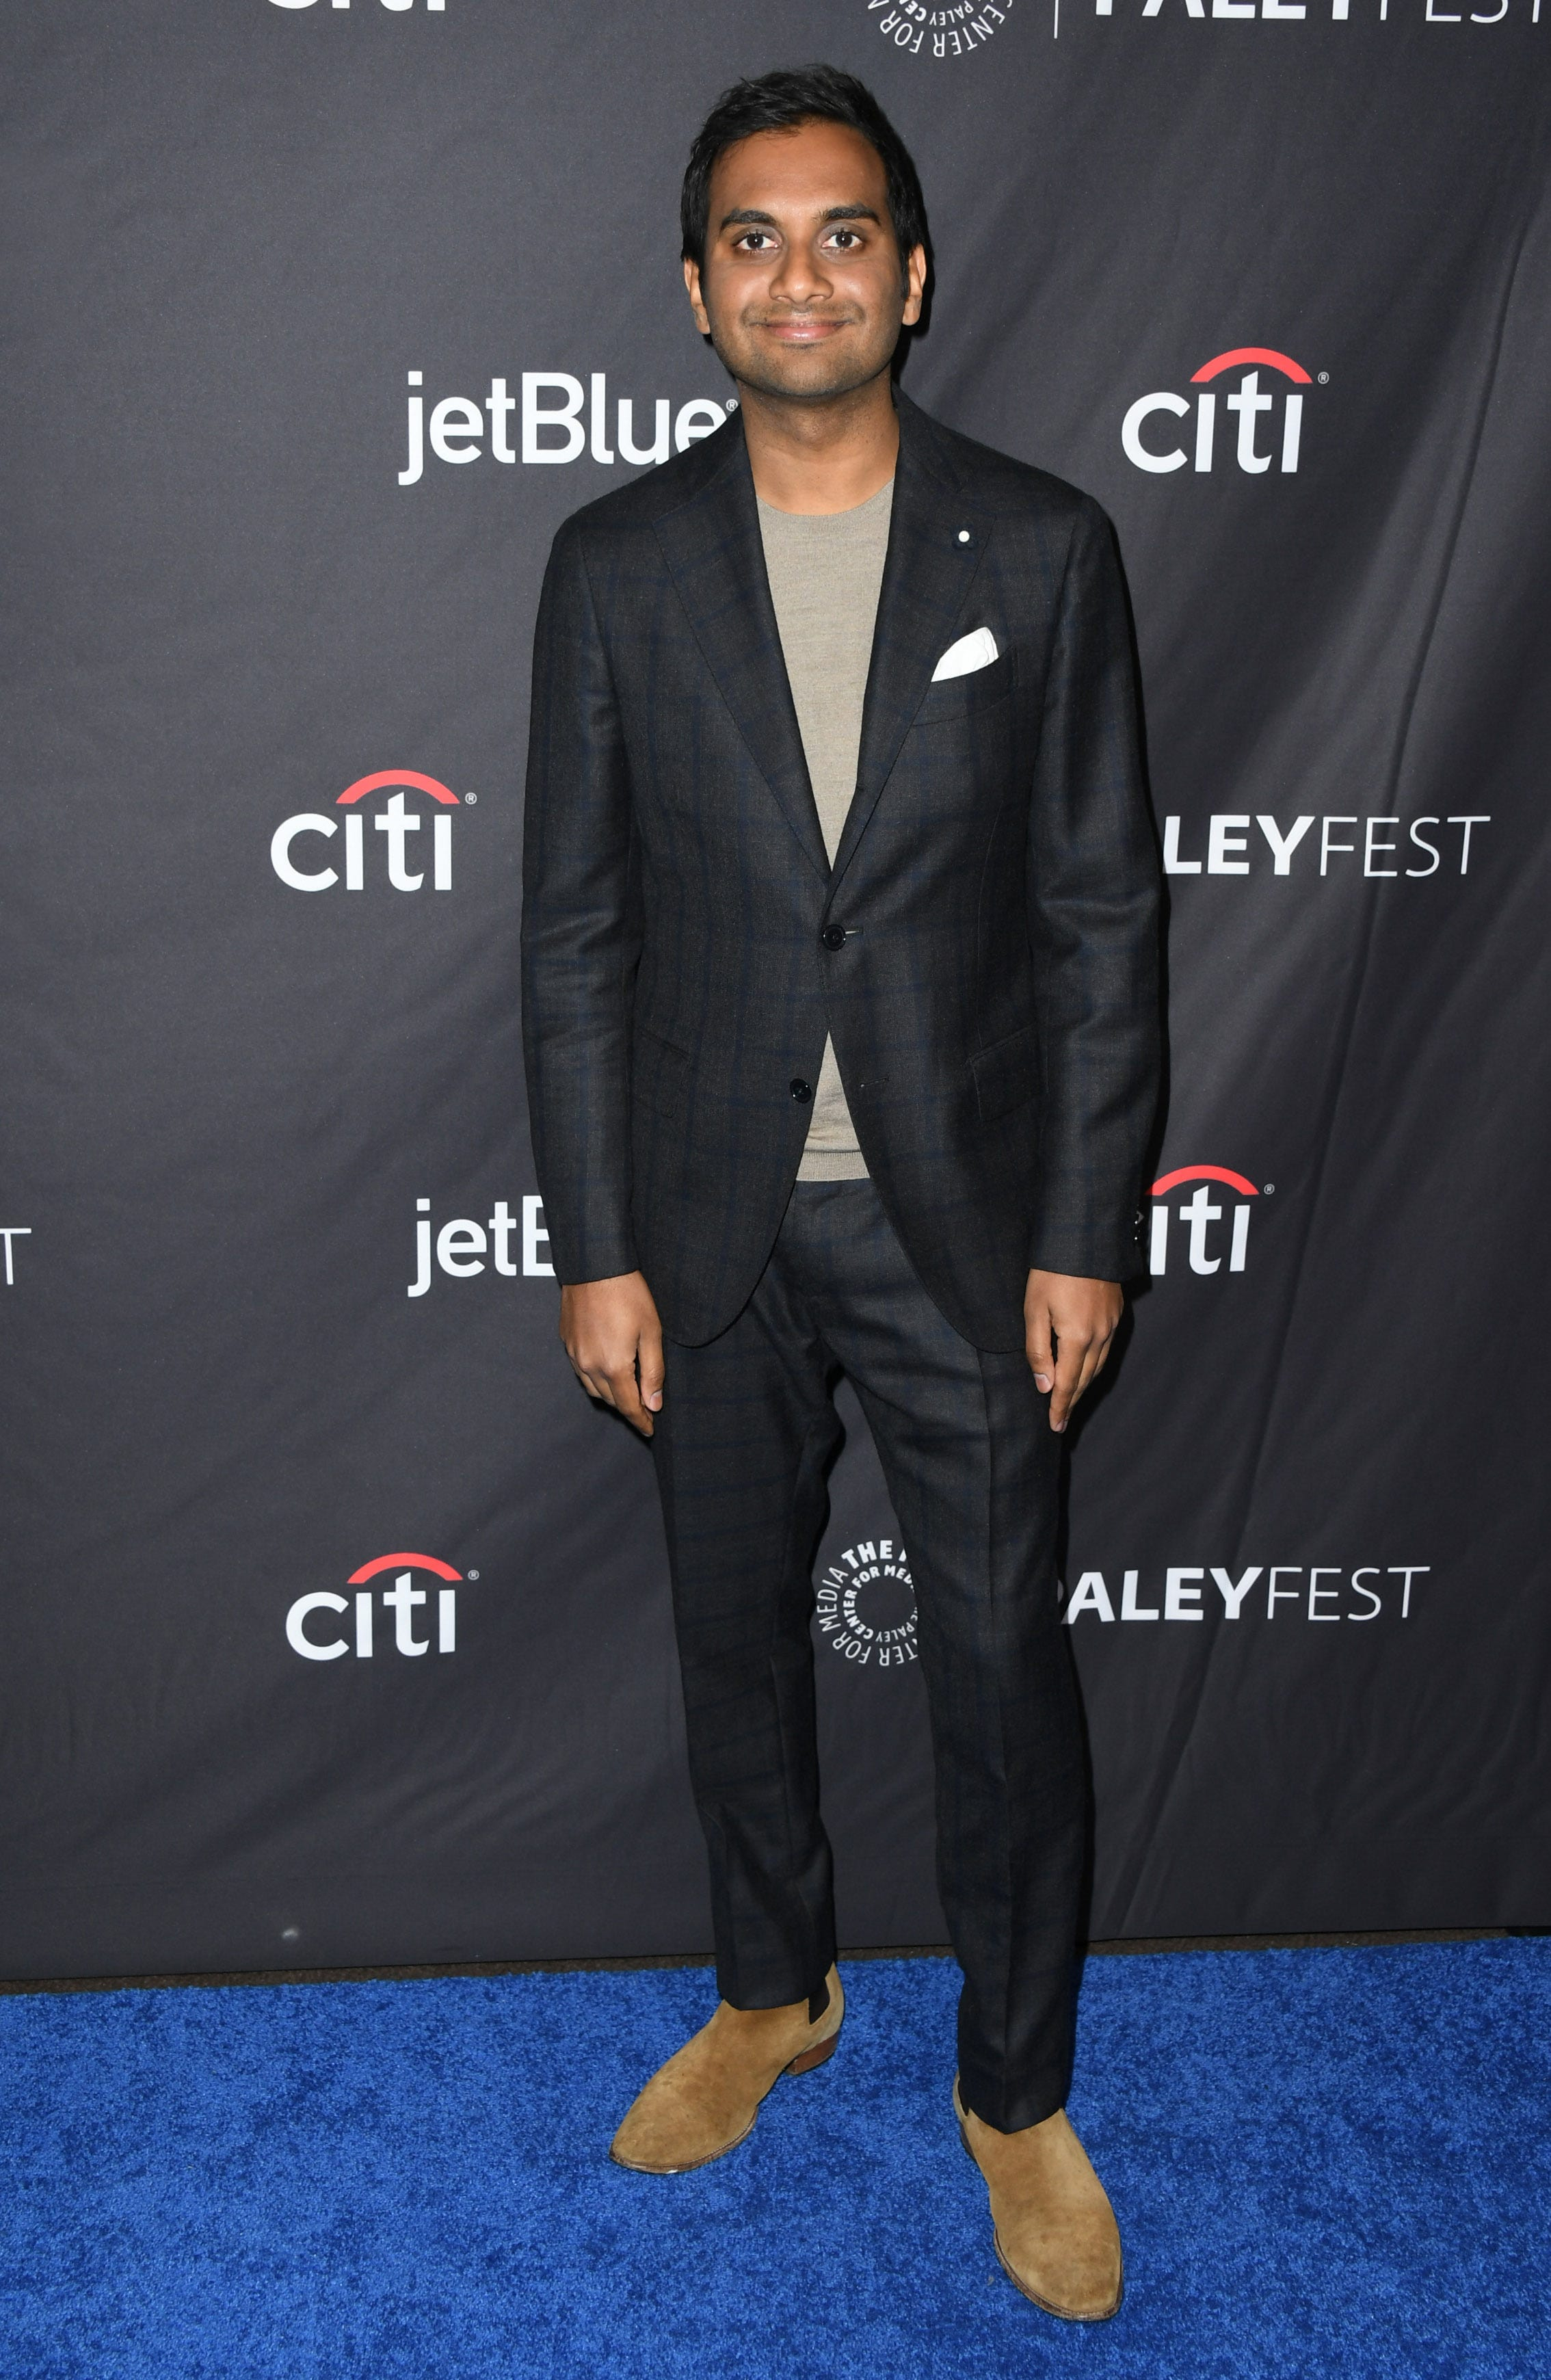 aziz-ansari-gets-a-warm-aposparks-apos-welcome-in-hollywood-in-rare-public-outing